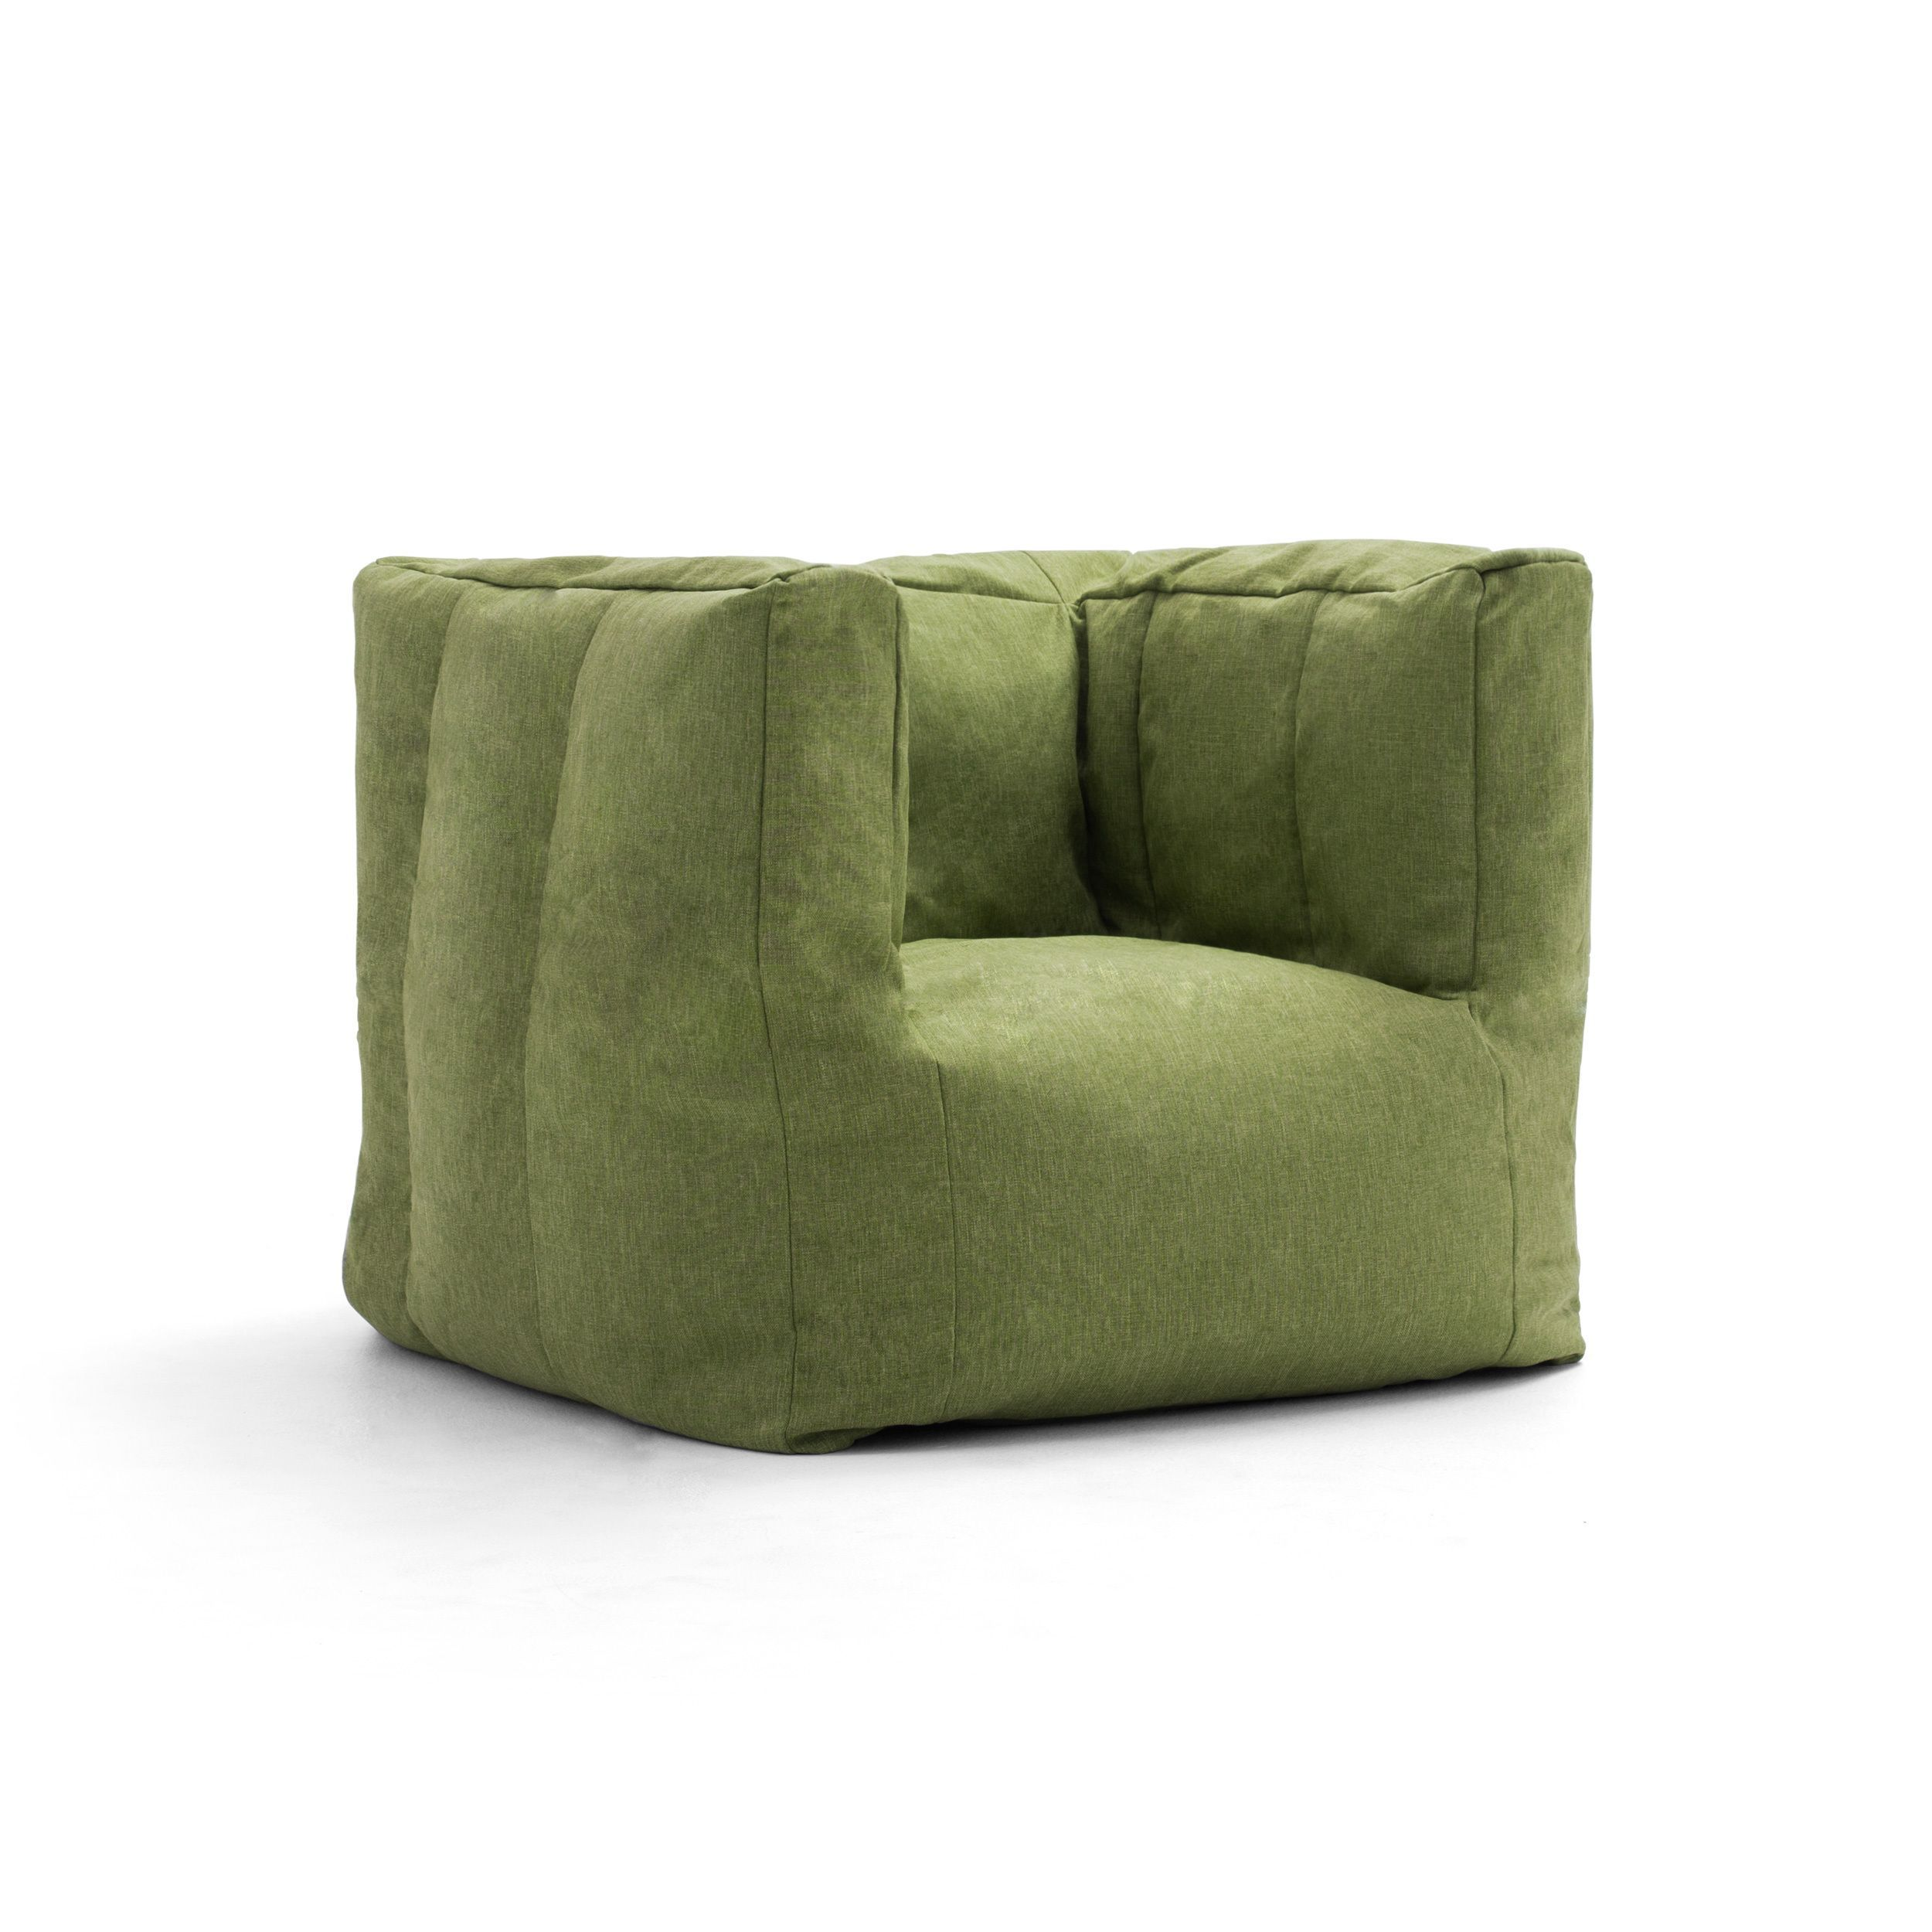 Groovy Comfort Research Beansack Big Joe Lux Linen Square Bean Bag Bralicious Painted Fabric Chair Ideas Braliciousco